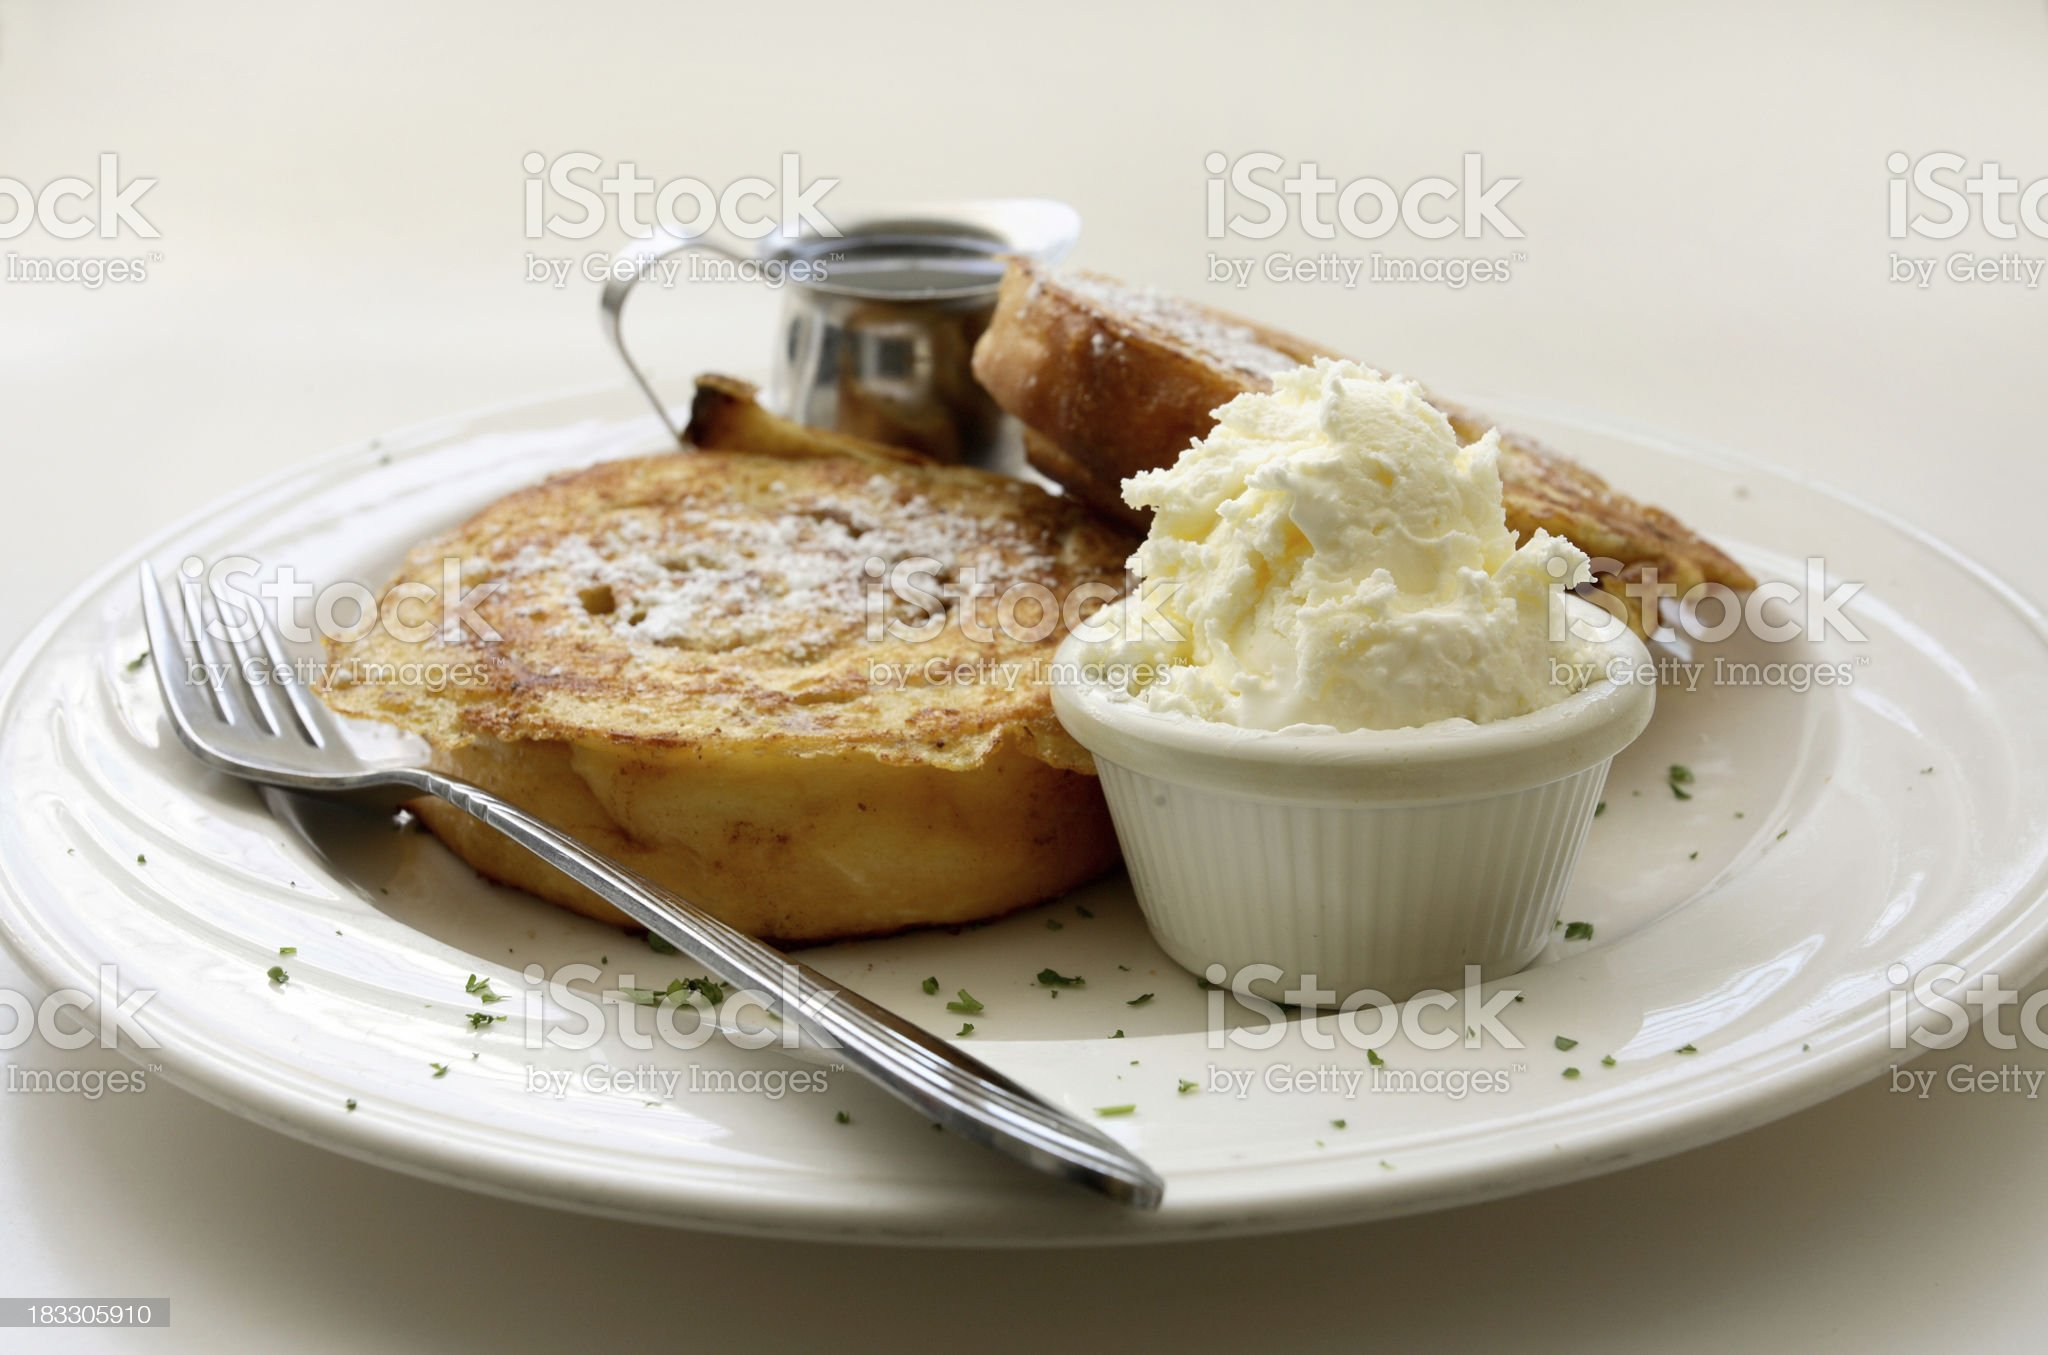 Cinnamon Roll French Toast royalty-free stock photo